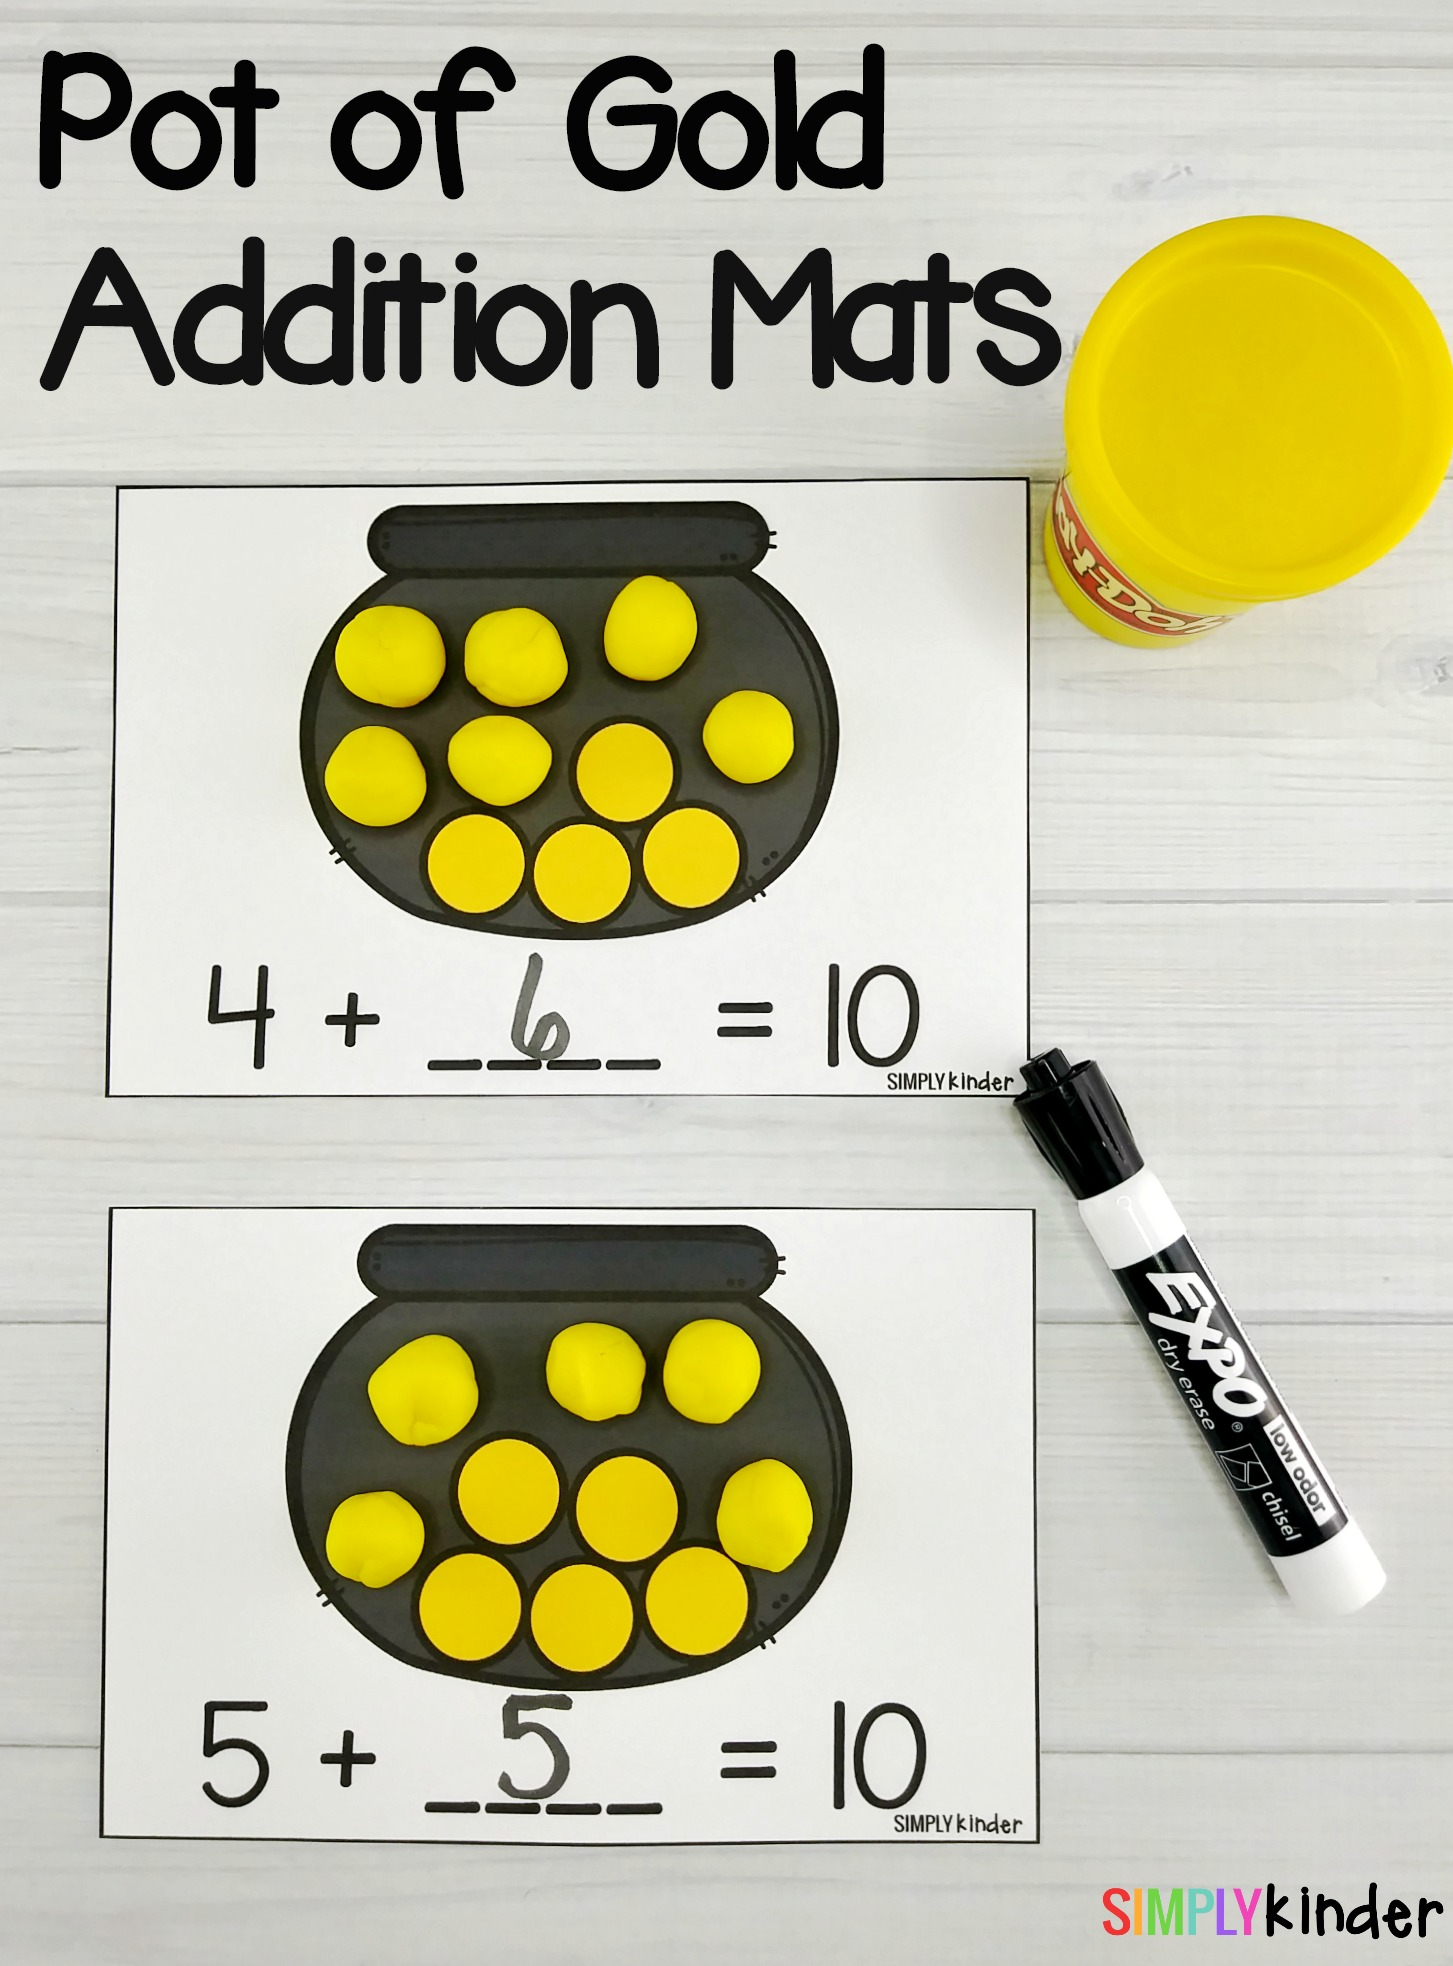 Free Printable Pot Of Gold Addition Mats For St Patrick S Day